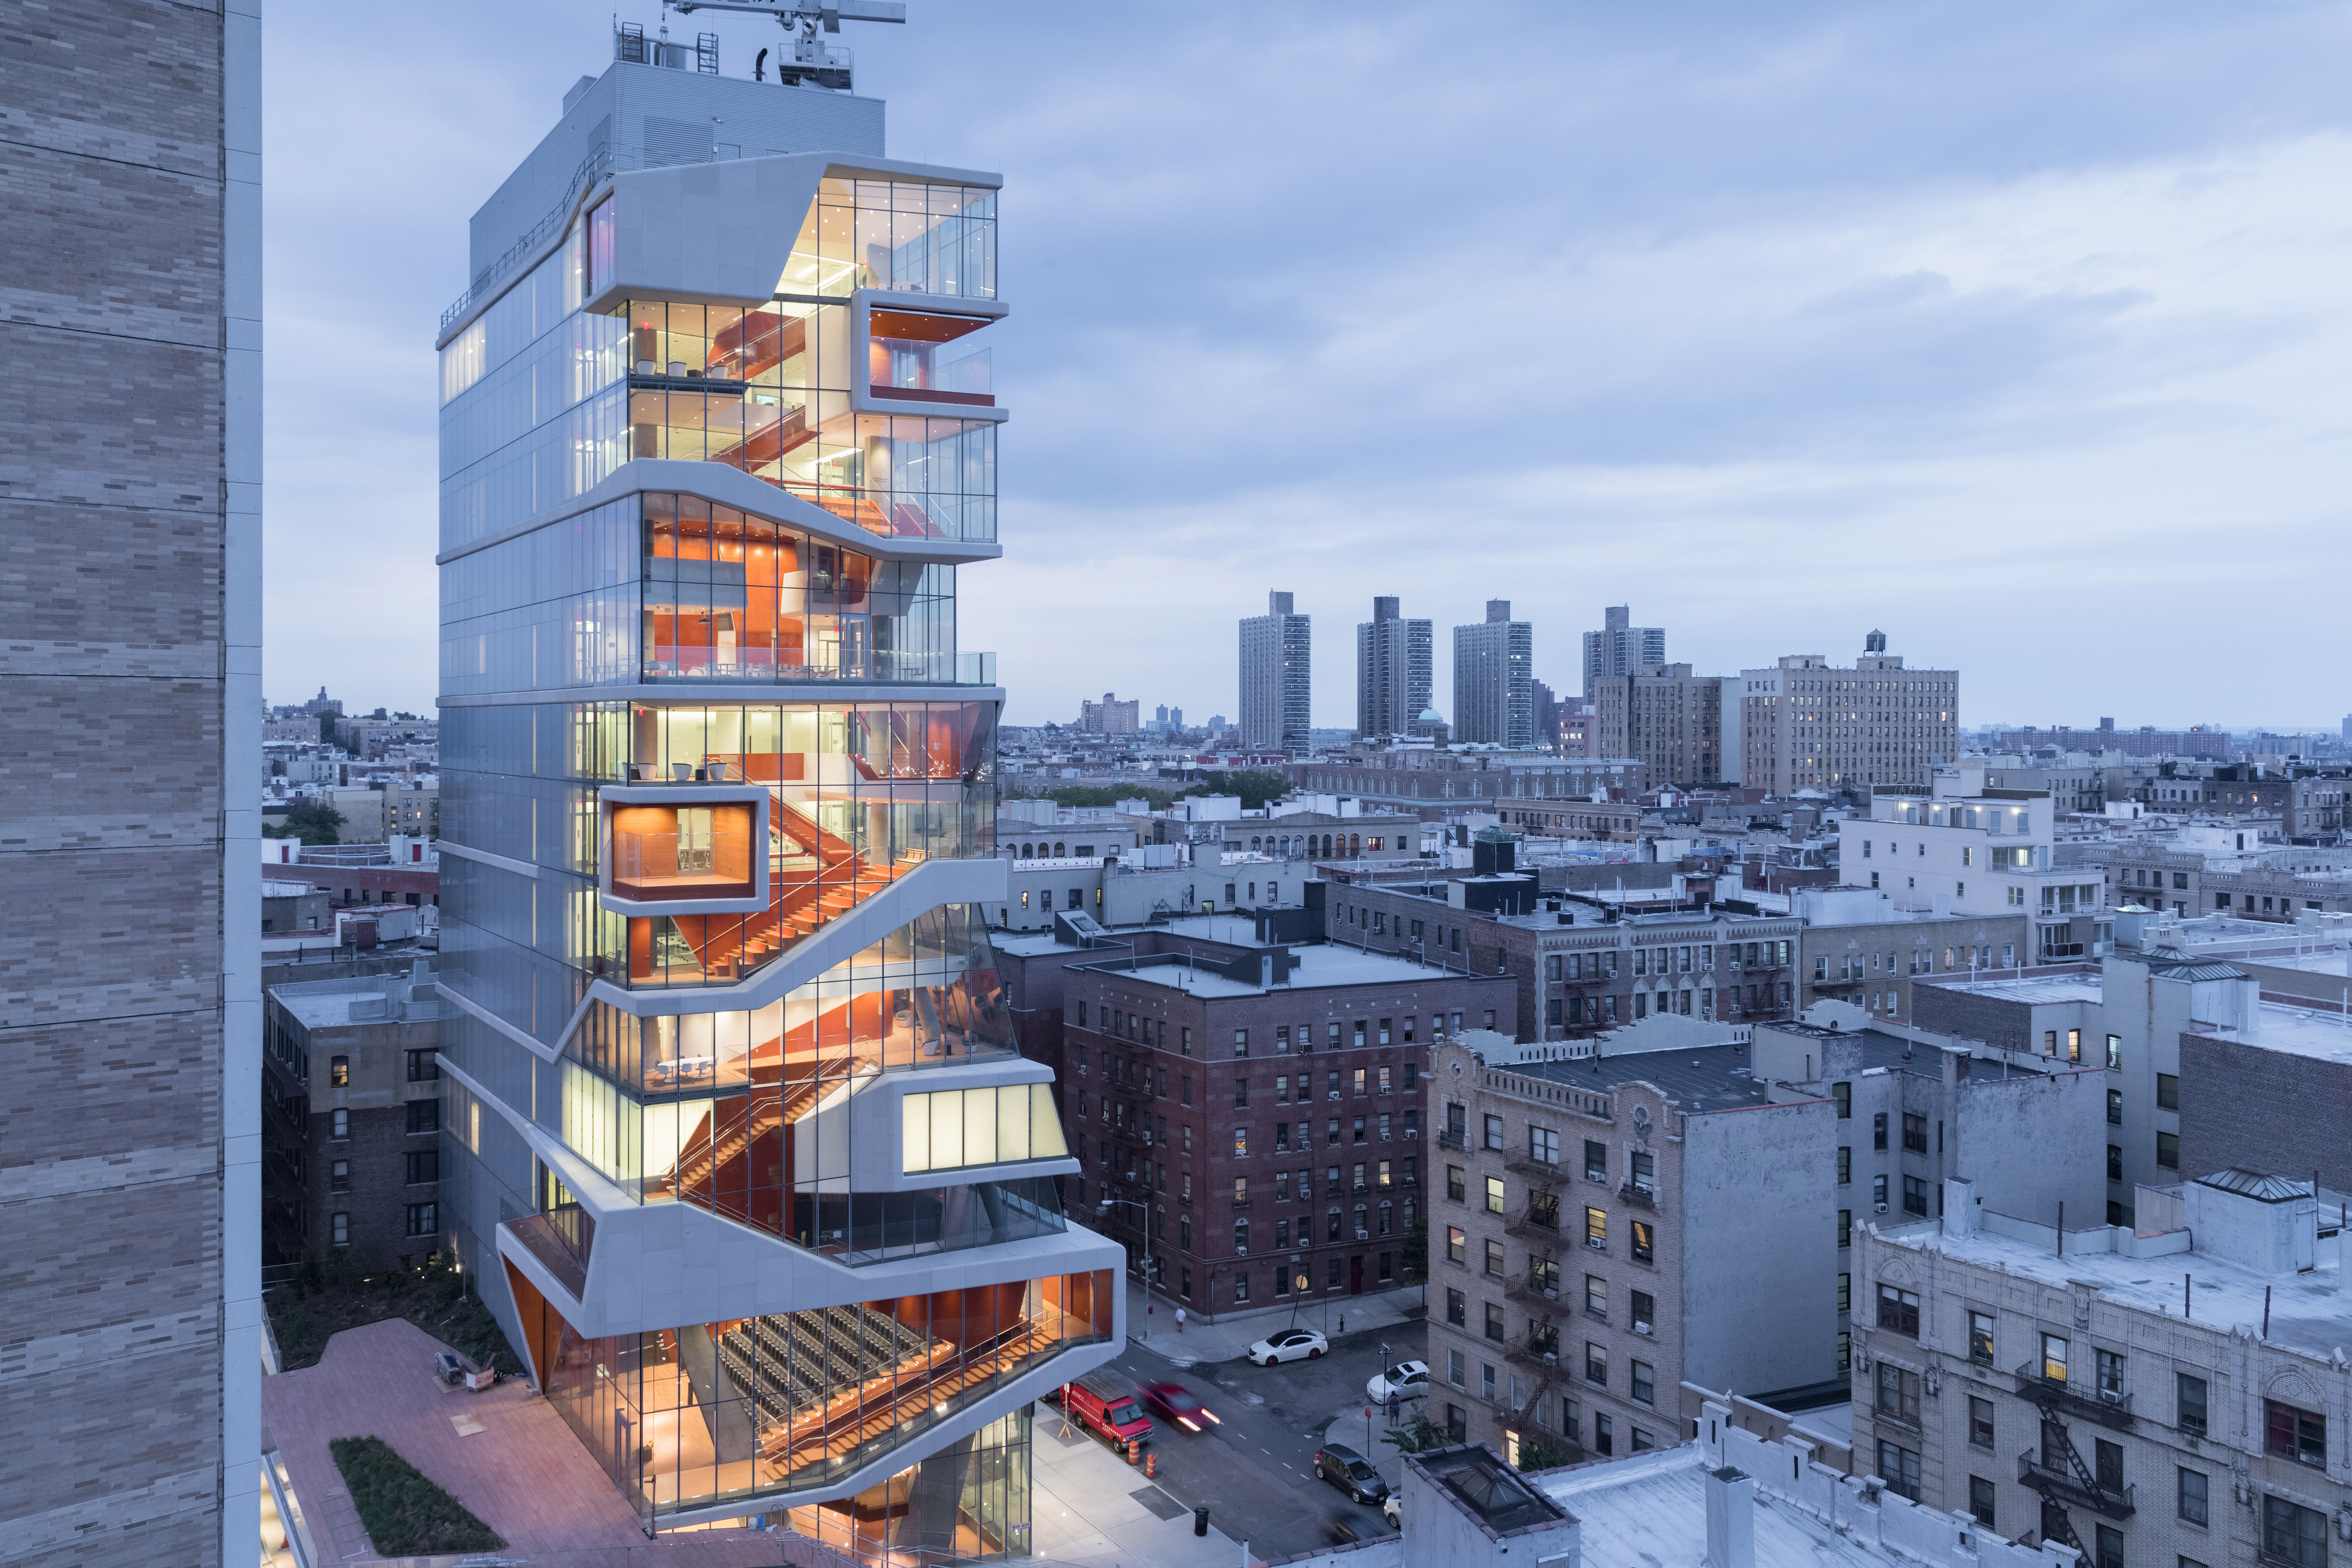 Architeture nyc architecture - curbed ny